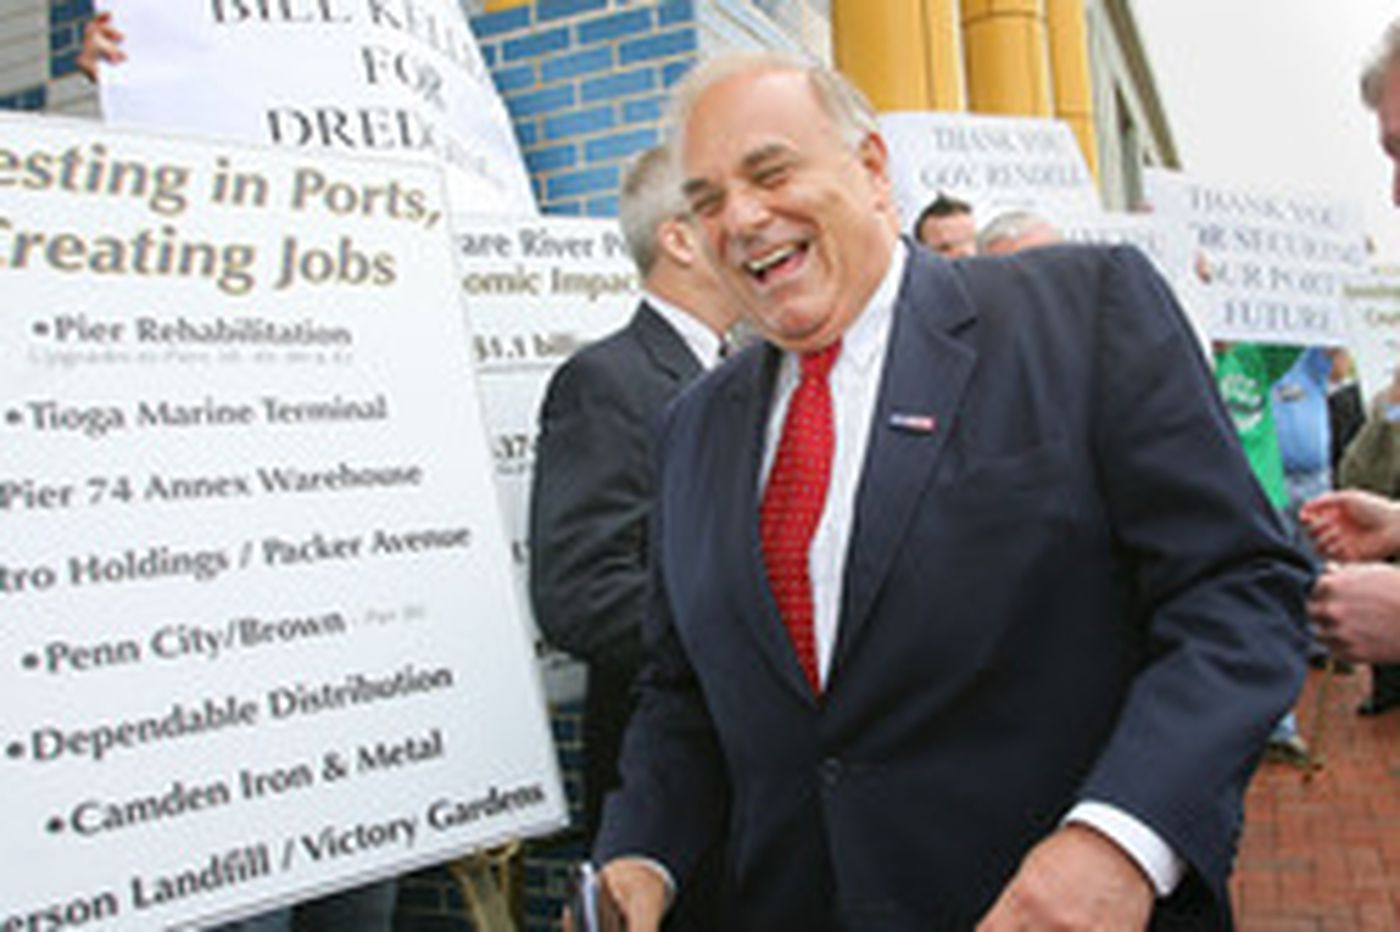 Rendell dredges up support for ports